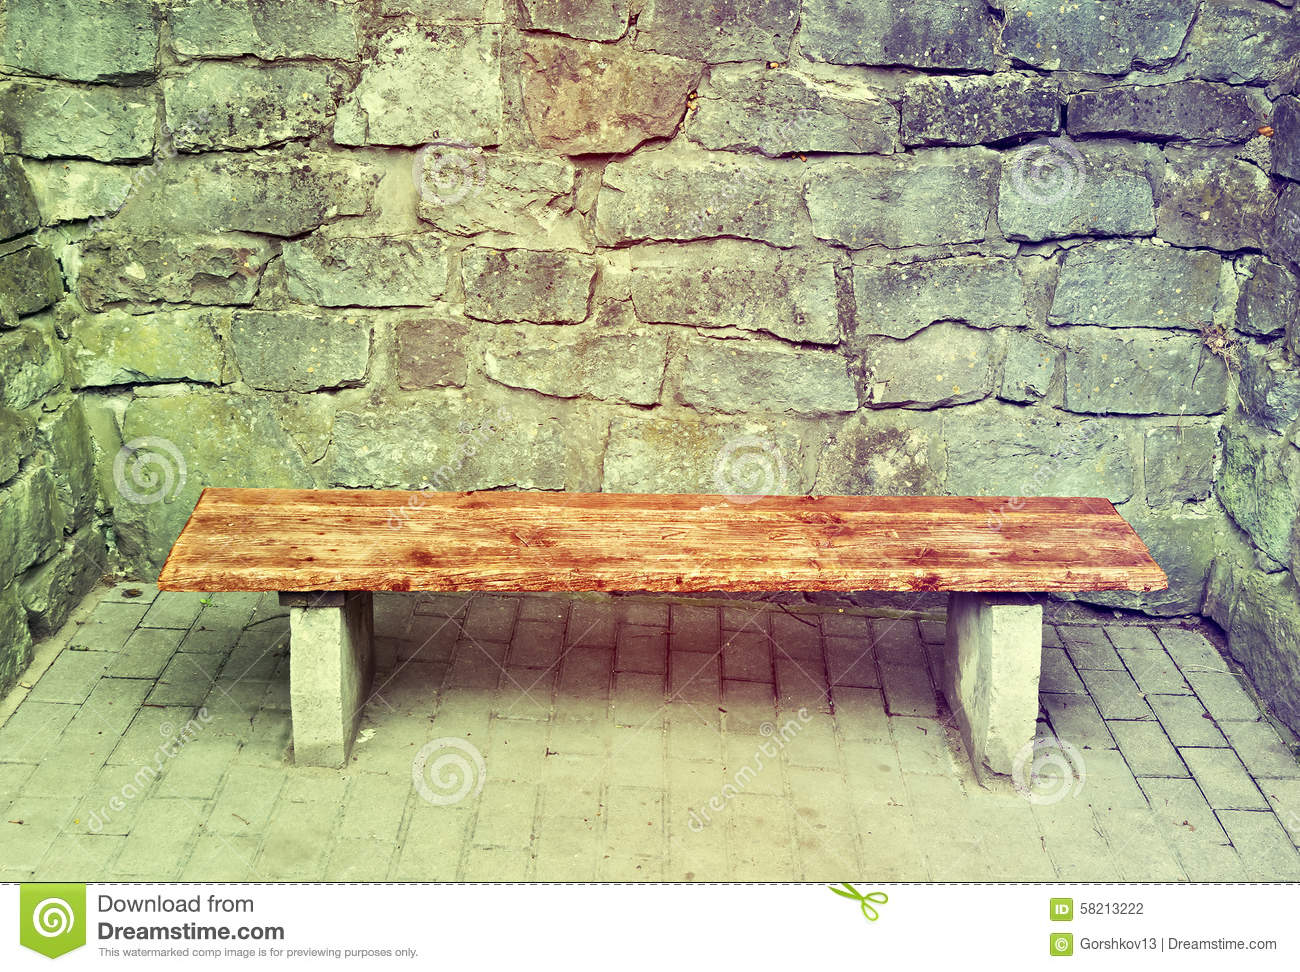 Stupendous Wooden Garden Bench At Medieval Brick Wall Stock Photo Machost Co Dining Chair Design Ideas Machostcouk